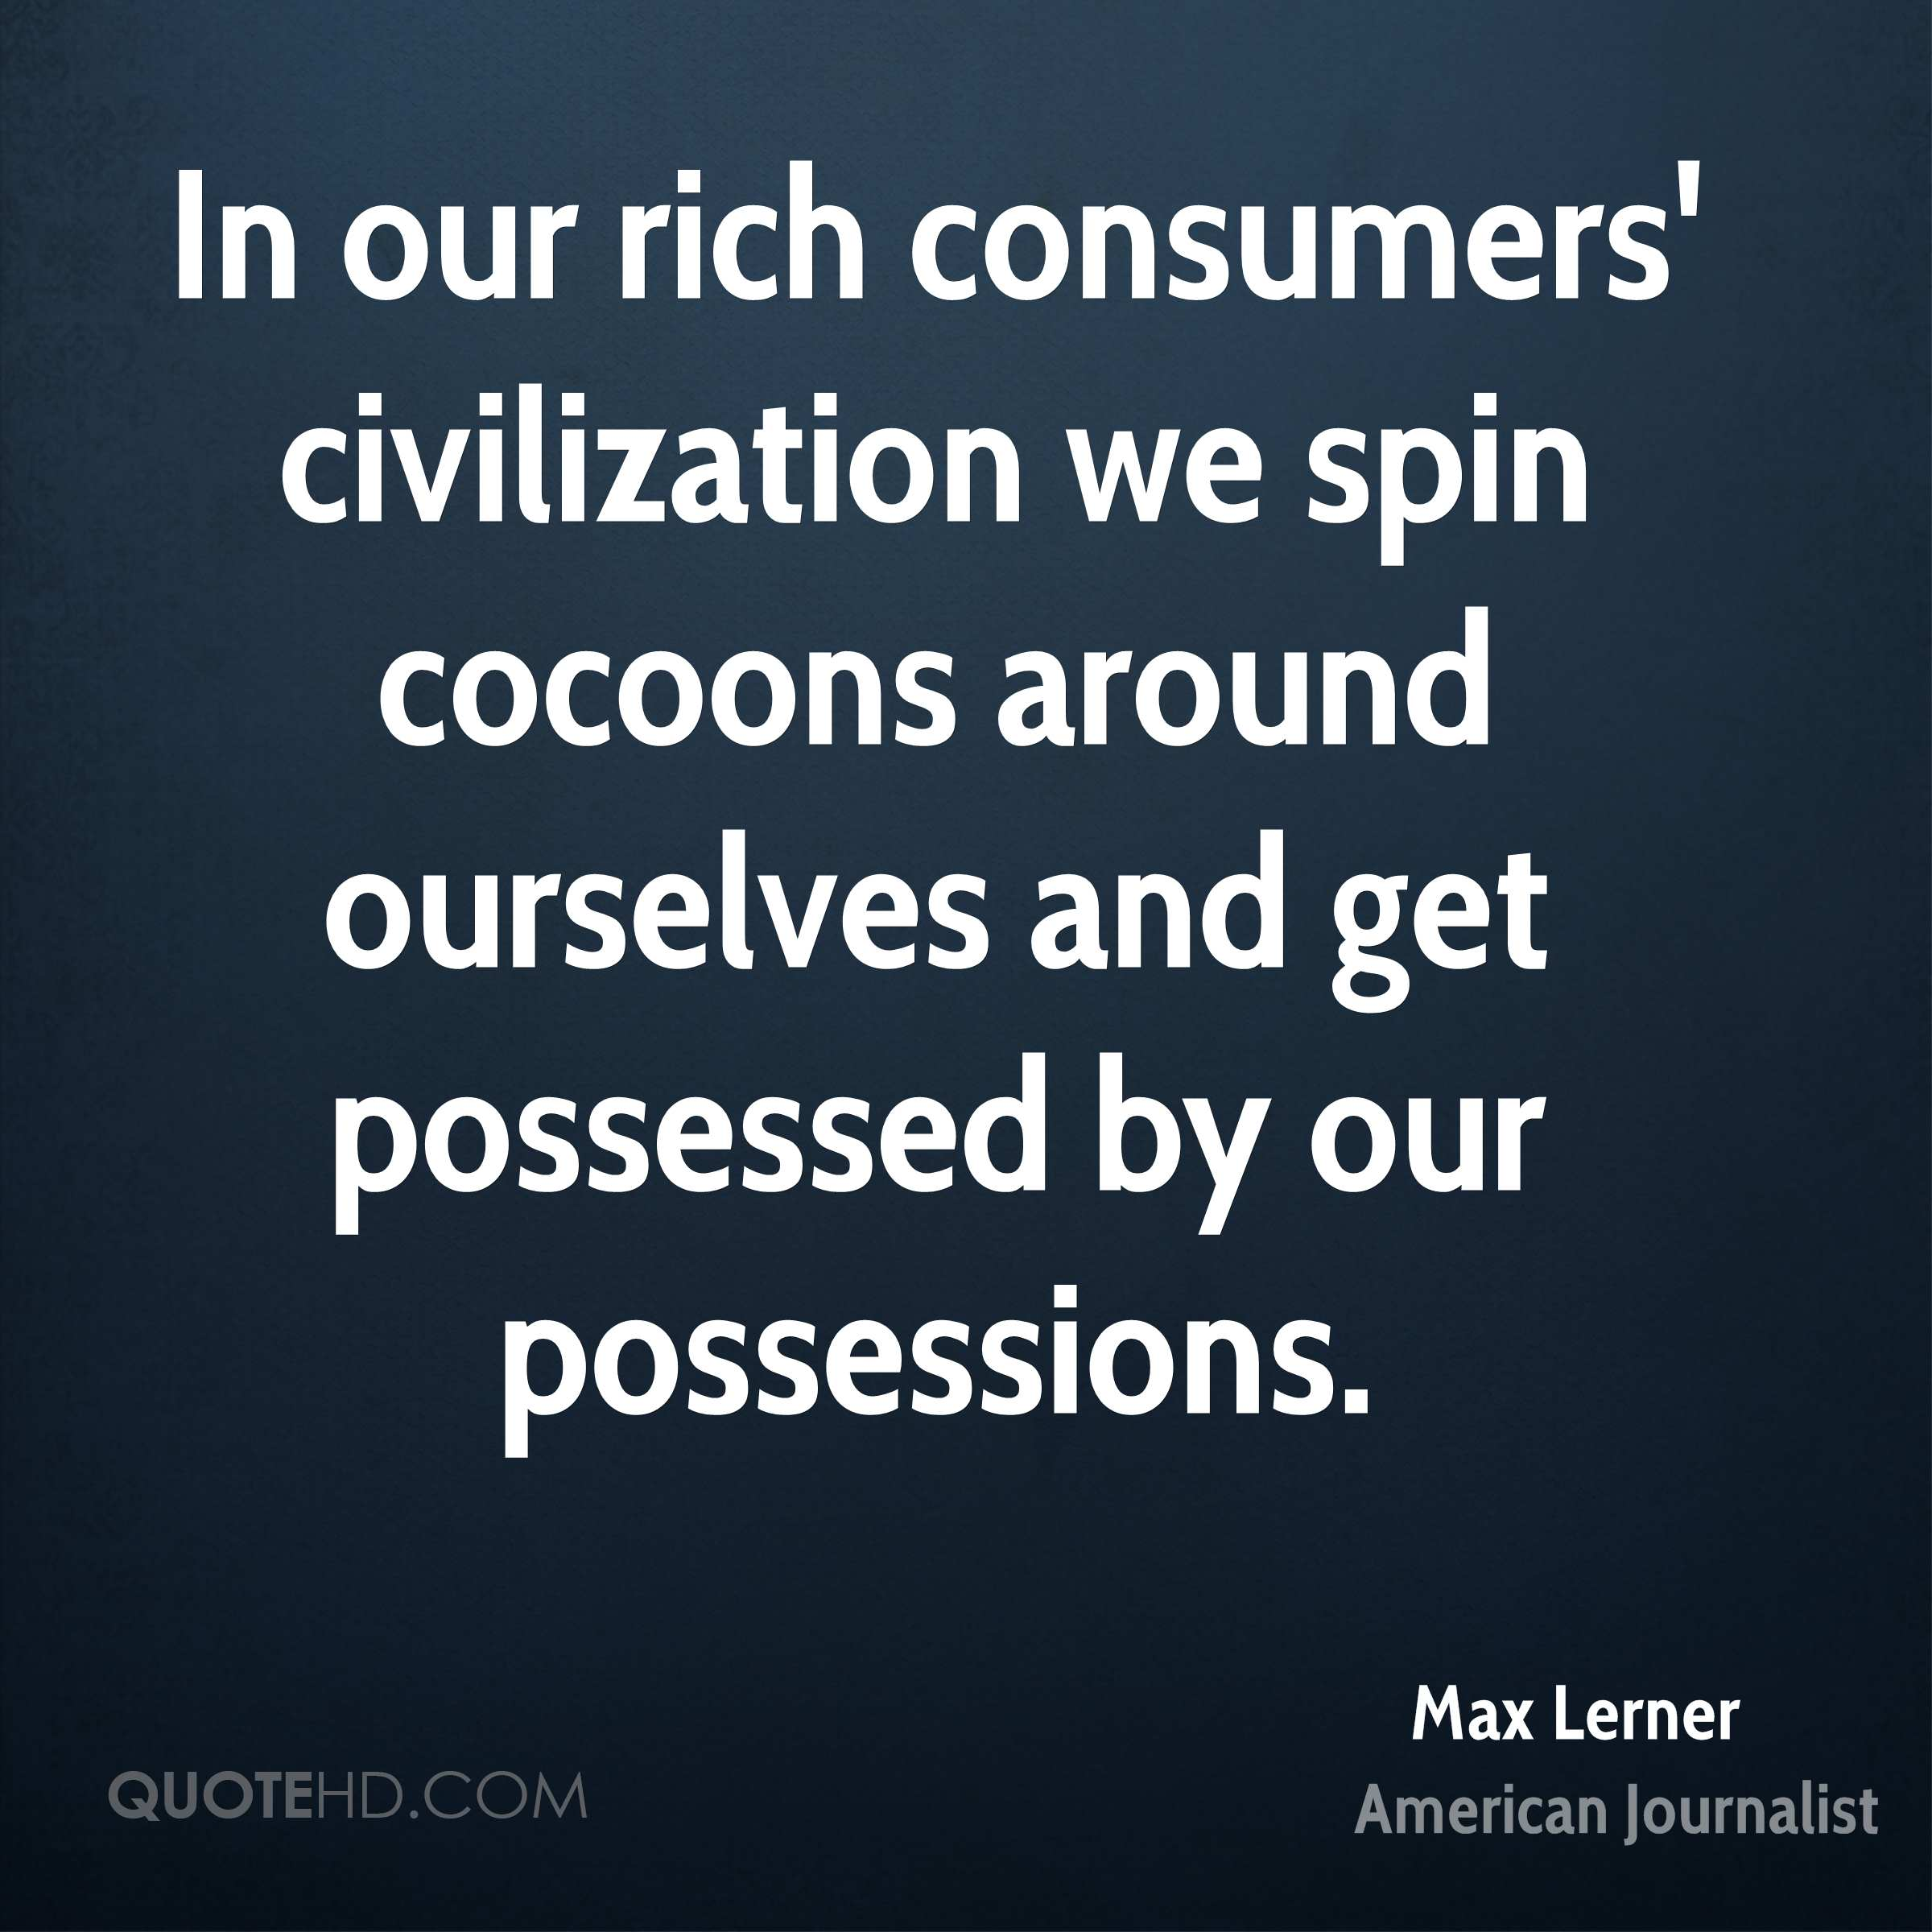 In our rich consumers' civilization we spin cocoons around ourselves and get possessed by our possessions.